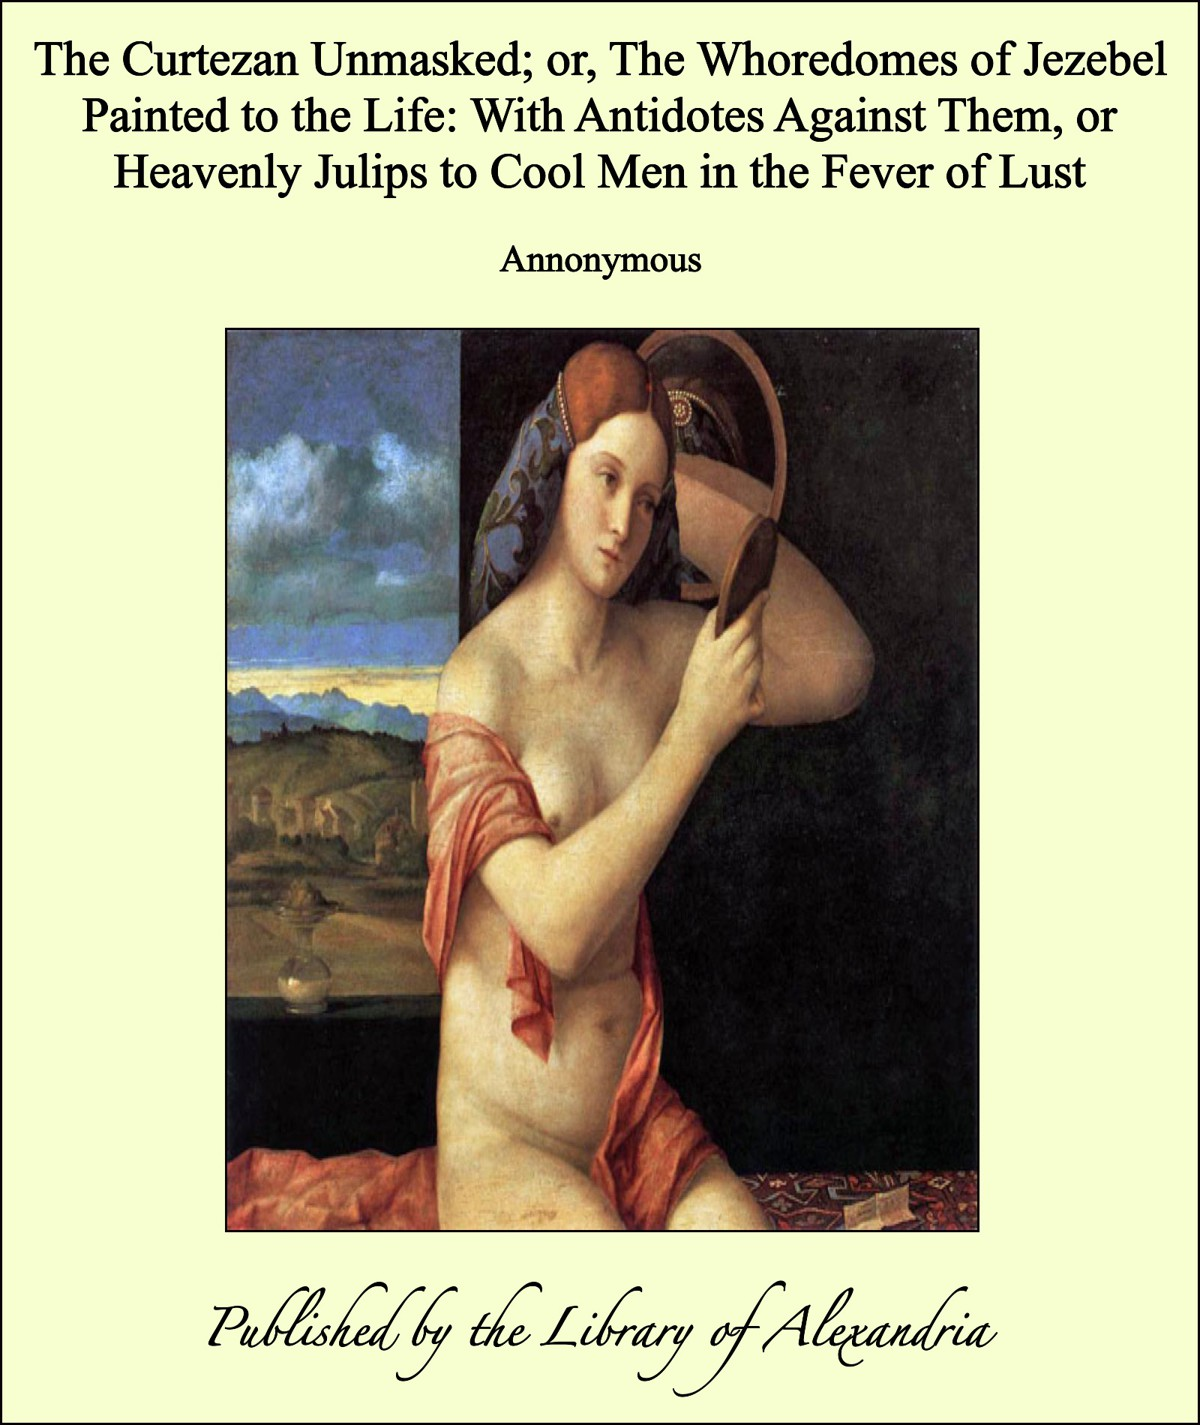 Annonymous - The Curtezan Unmasked; or, The Whoredomes of Jezebel Painted to the Life: With Antidotes Against Them, or Heavenly Julips to Cool Men in the Fever of Lust